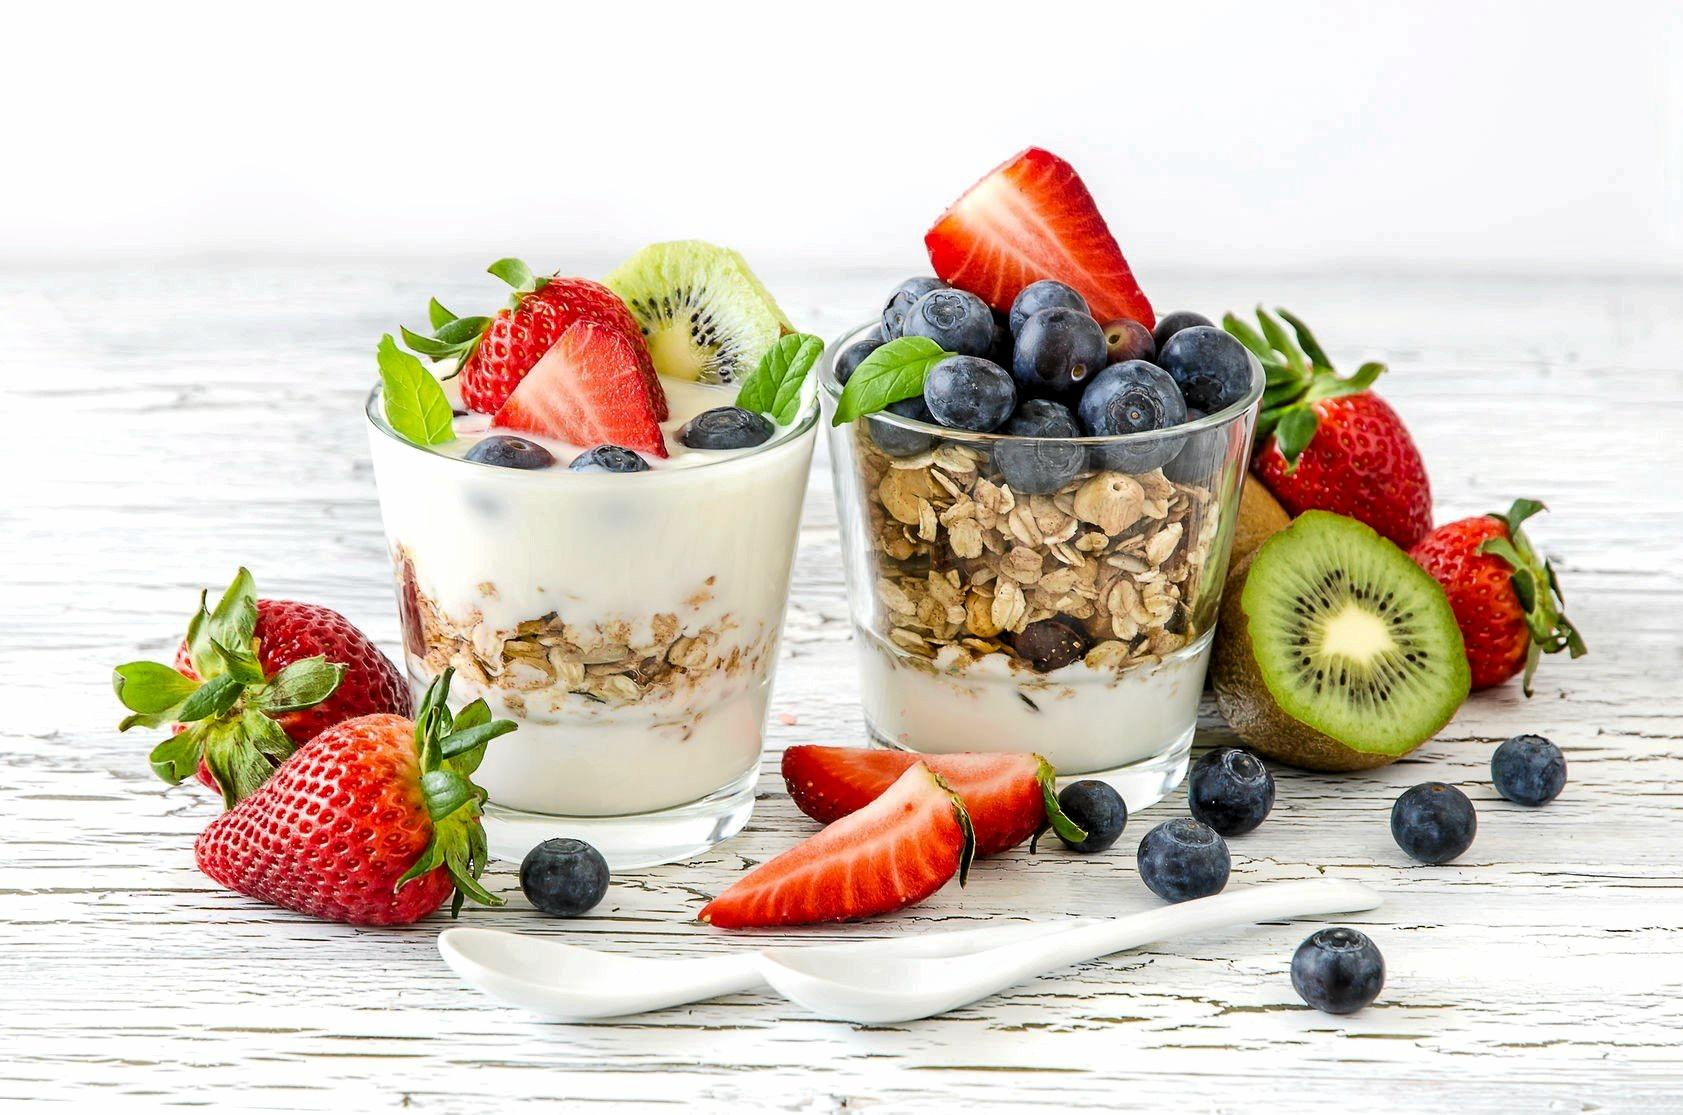 Dress up a healthy breakfast of fruit, muesli and yogurt for mum tomorrow morning.